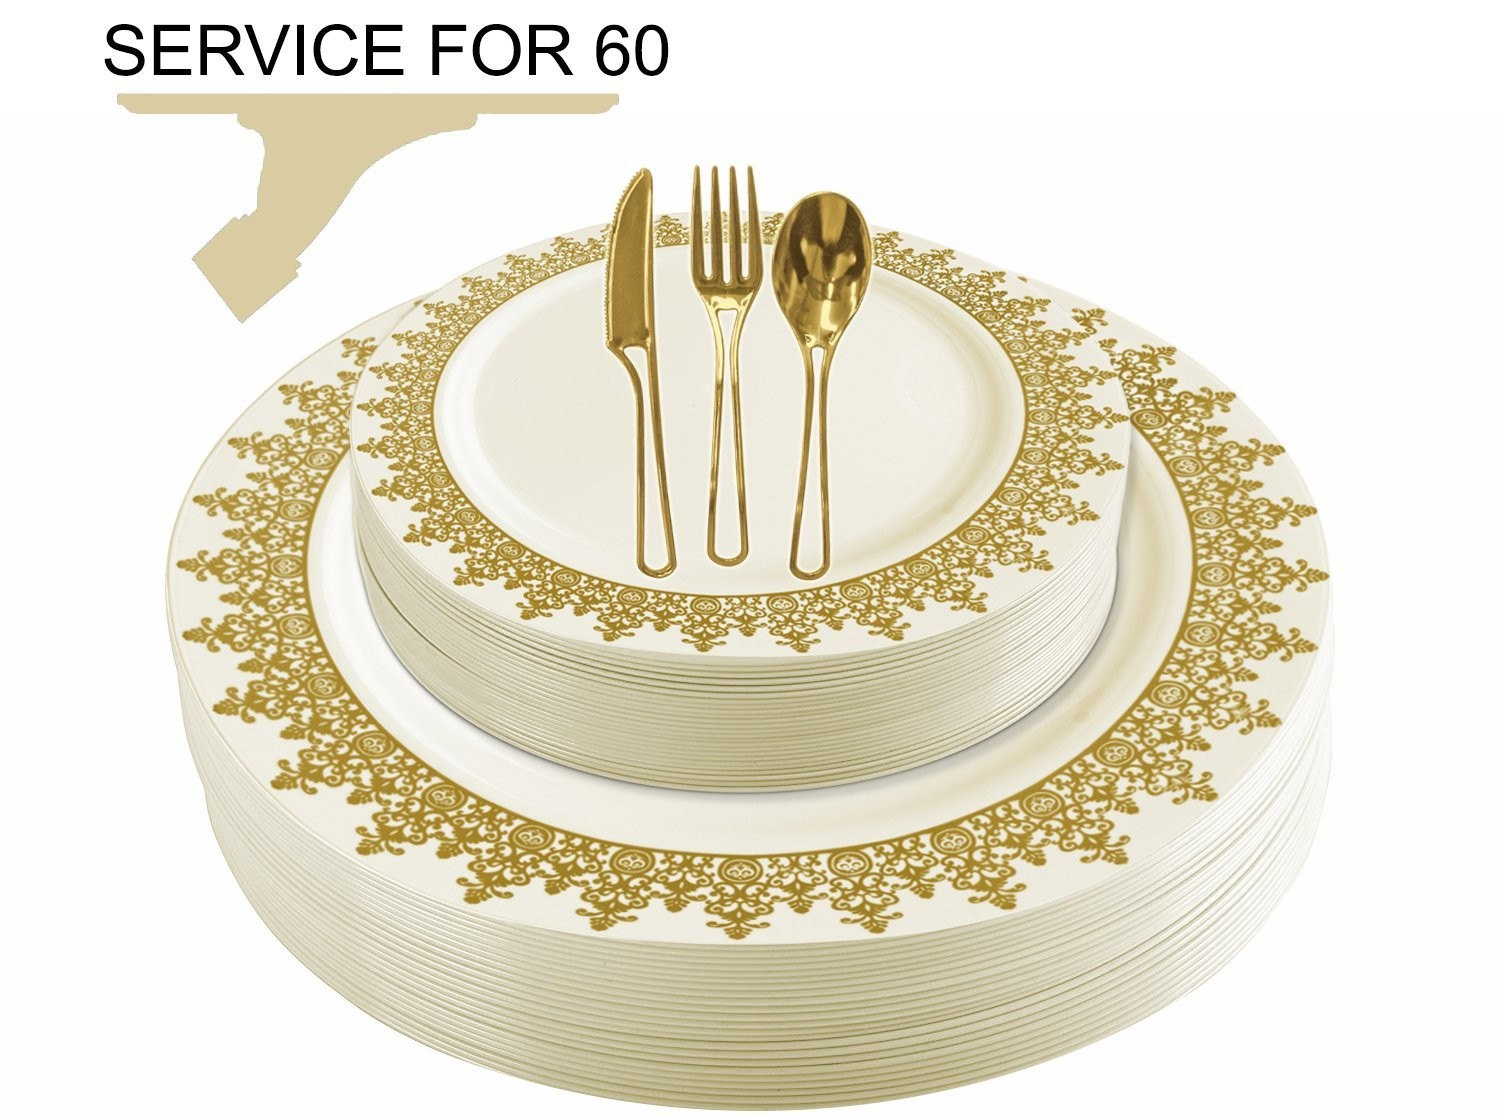 TigerChef Disposable Plastic Plate and Silverware Combo Set, Opulent Cream and Gold - Service for 60